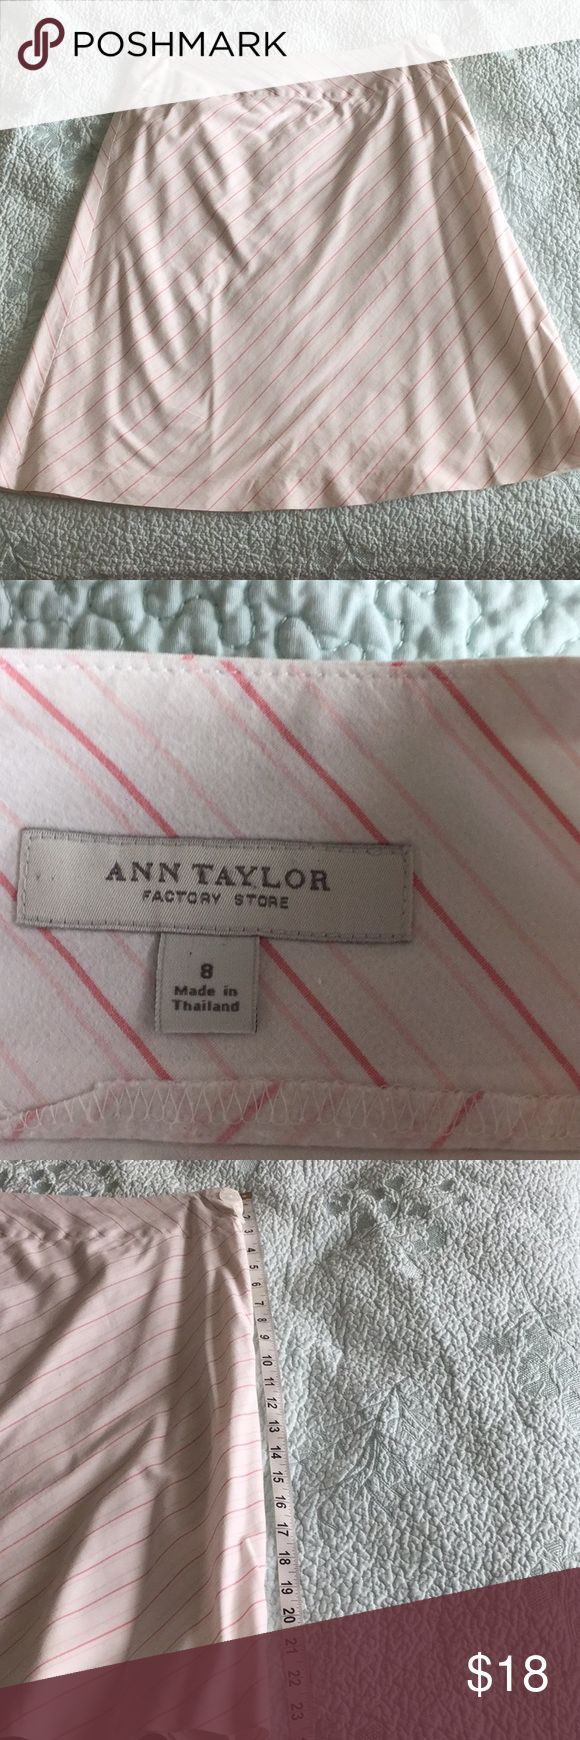 Pink and white striped Ann Taylor factory skirt Dark pink, light pink, and white stripe size 8 skirt. Has a light white lining underneath. Has small holes up on the top of the skirt from where the 2 safety pins were holding up the skirt (on each side) after dry cleaning. Super cute for summer/spring! Ann Taylor Factory Skirts